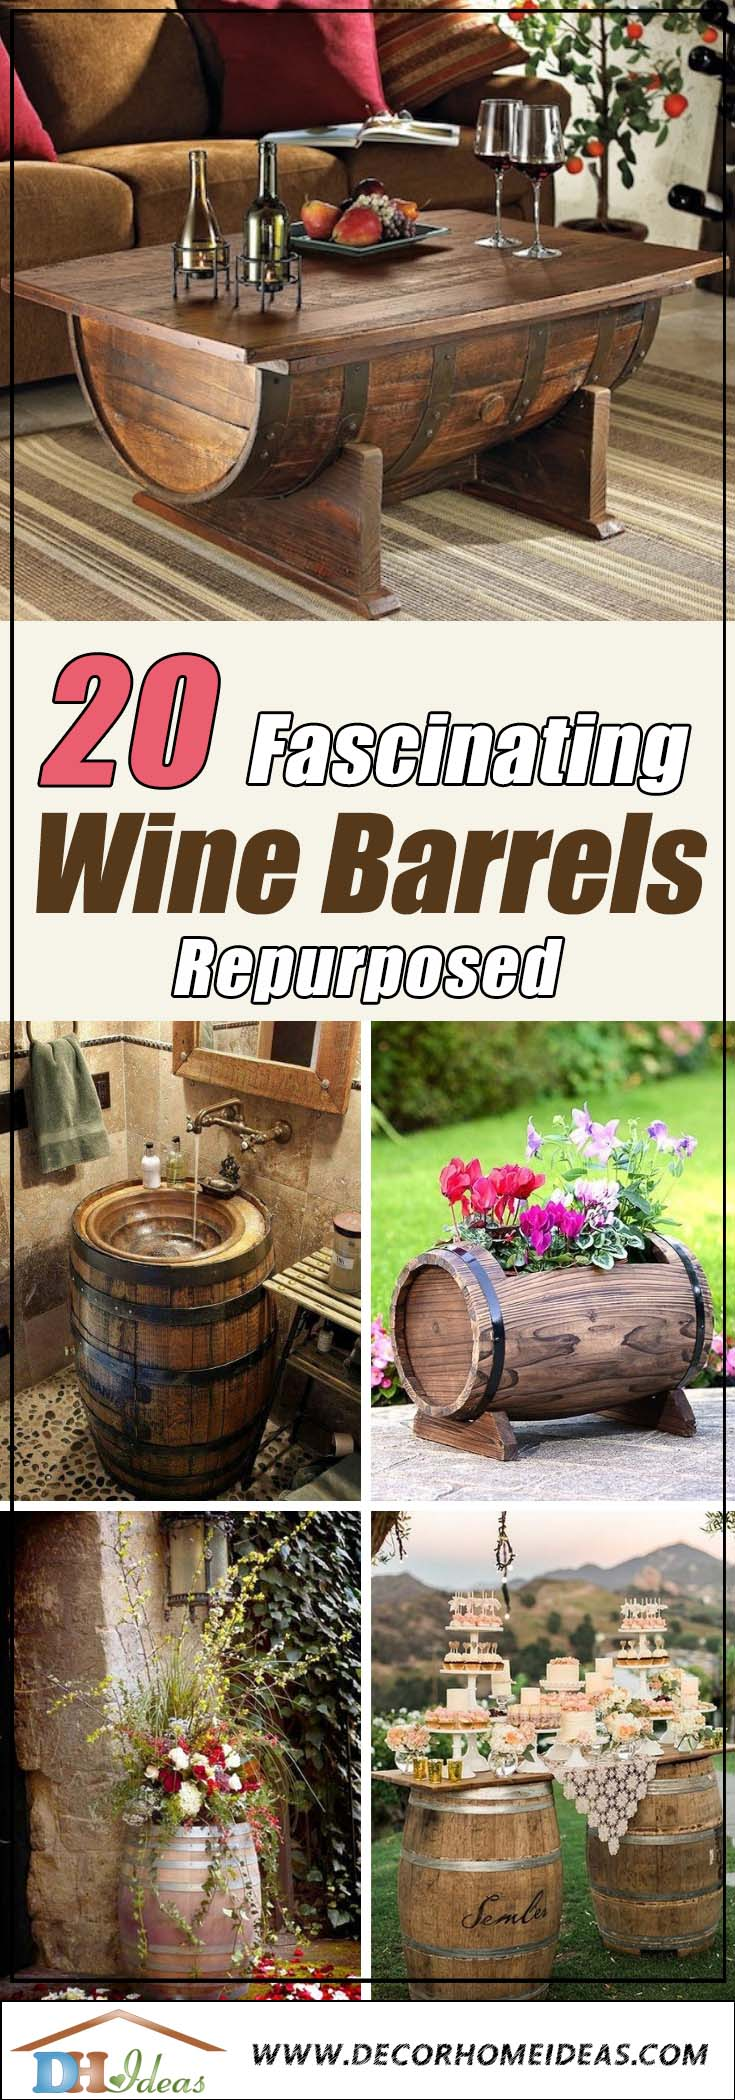 20 Truly Fascinating Ways To Repurpose Old Wine Barrels Title | Create stunning decoration with old wine barrels #winebarrel #repurposed #diy #barrel #decoratingideas #homedecor #decorhomeideas